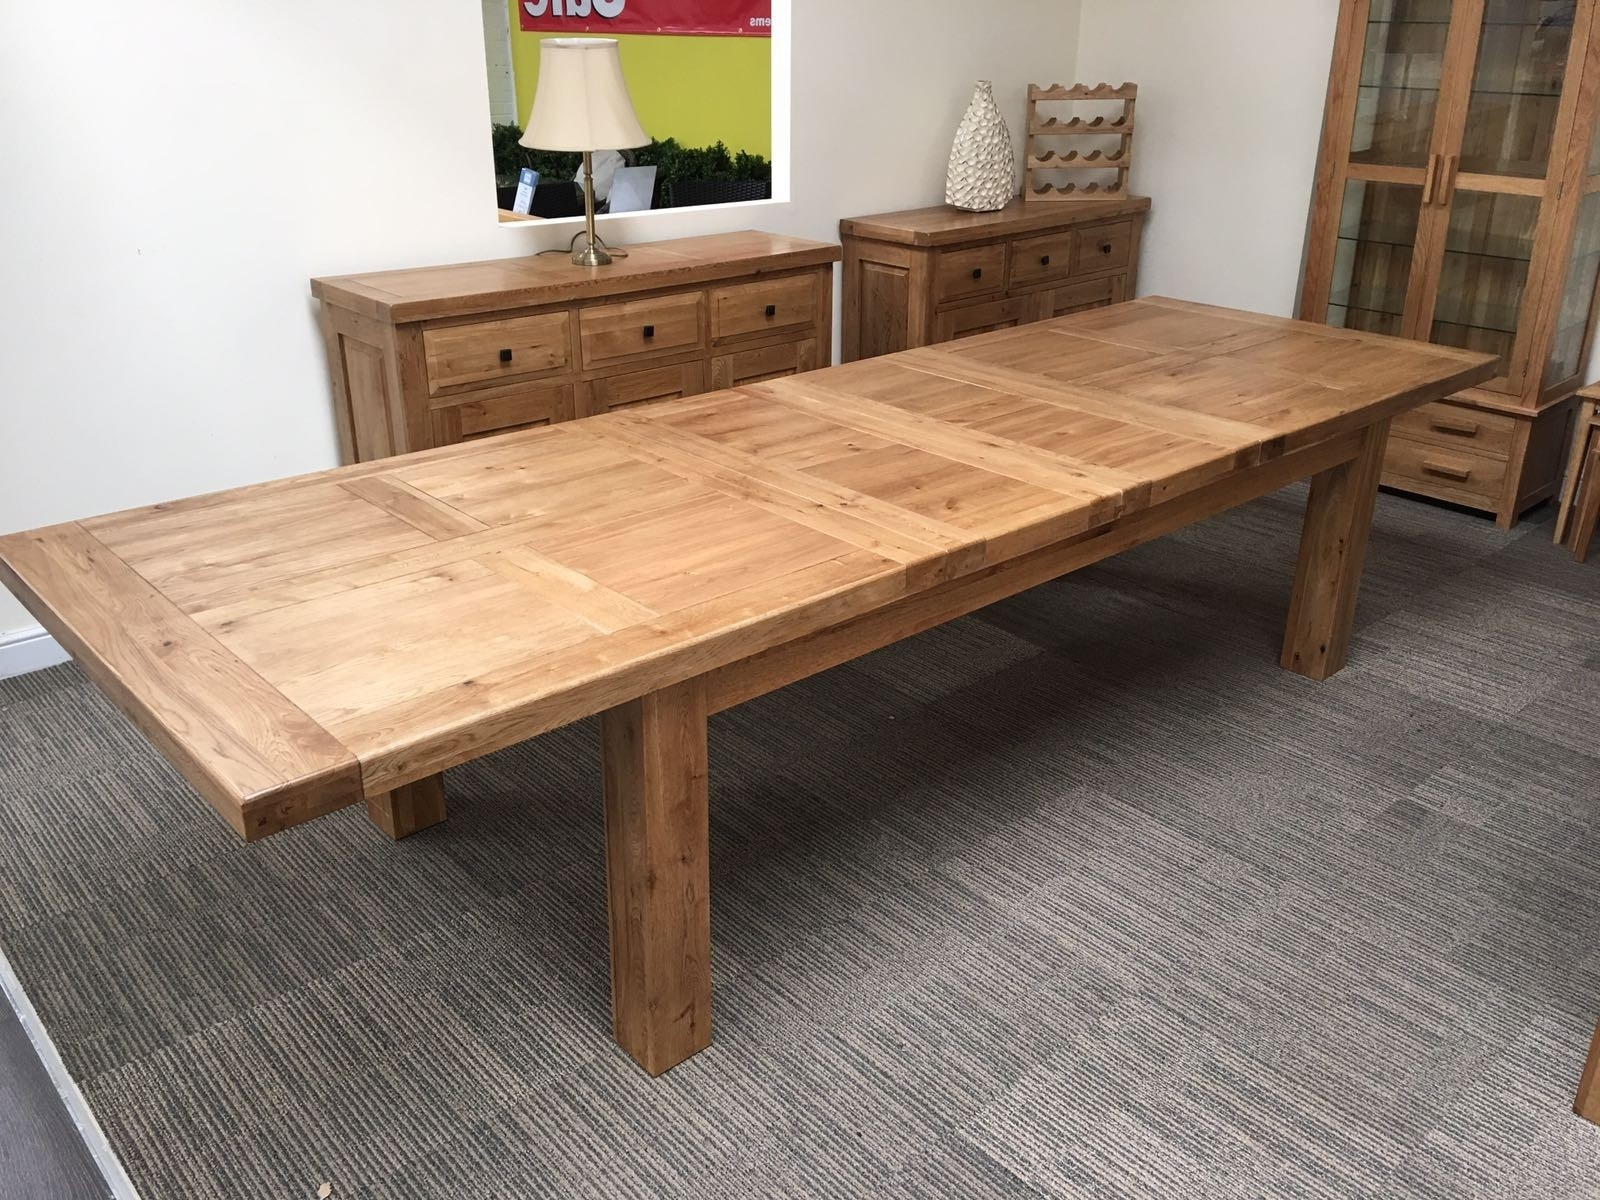 The Making Of The Solid Wood Dining Table – Home Decor Ideas Within Widely Used Solid Oak Dining Tables (View 23 of 25)